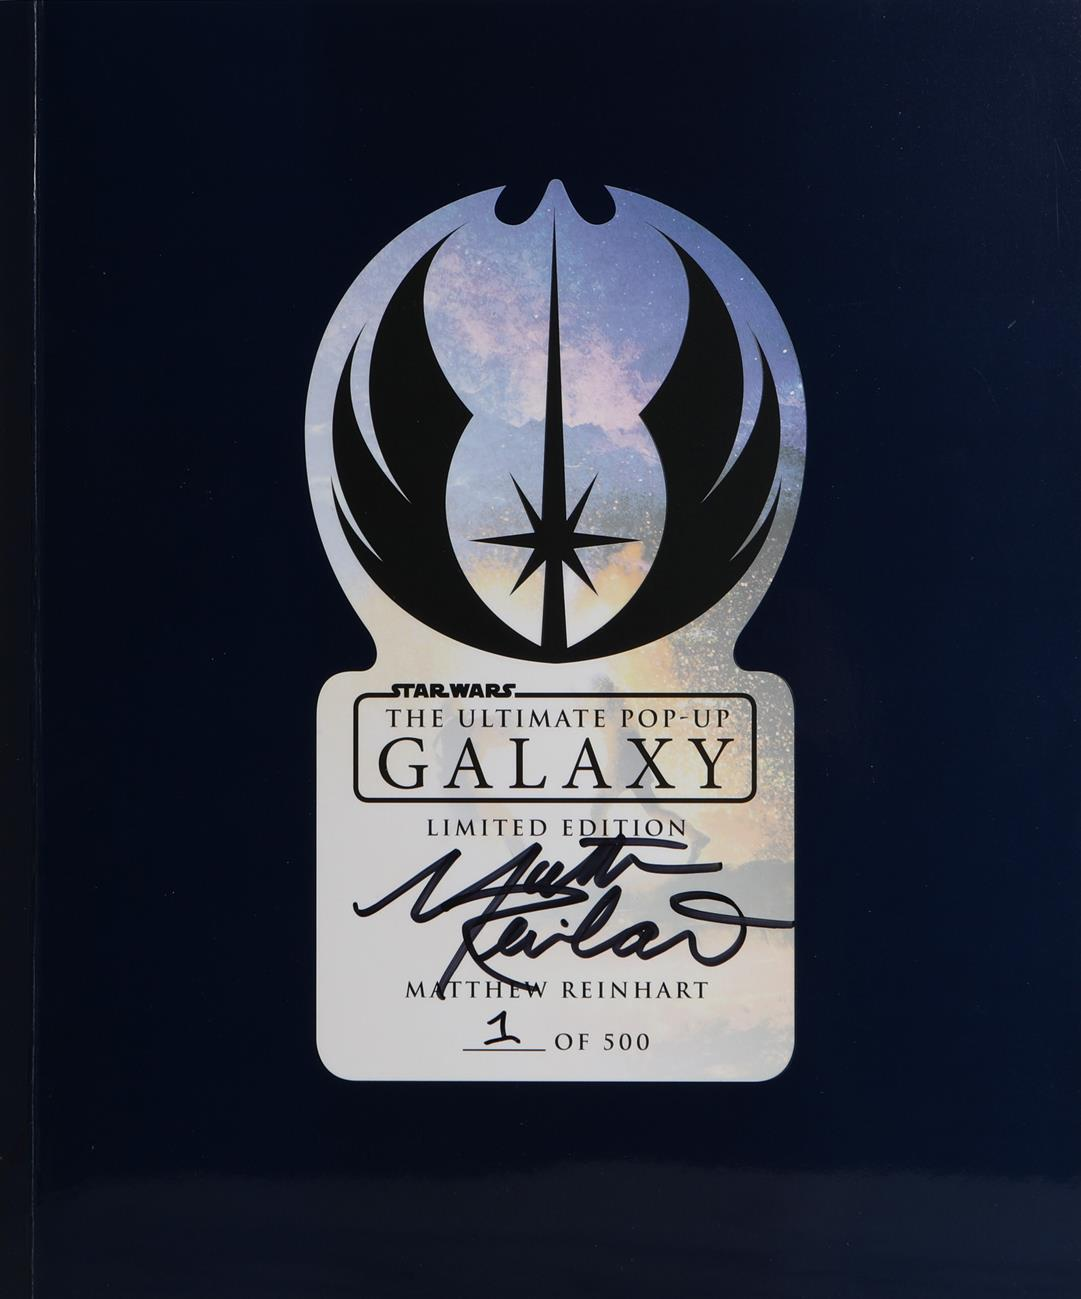 Star Wars: Ultimate Pop-Up Galaxy Limited Edition